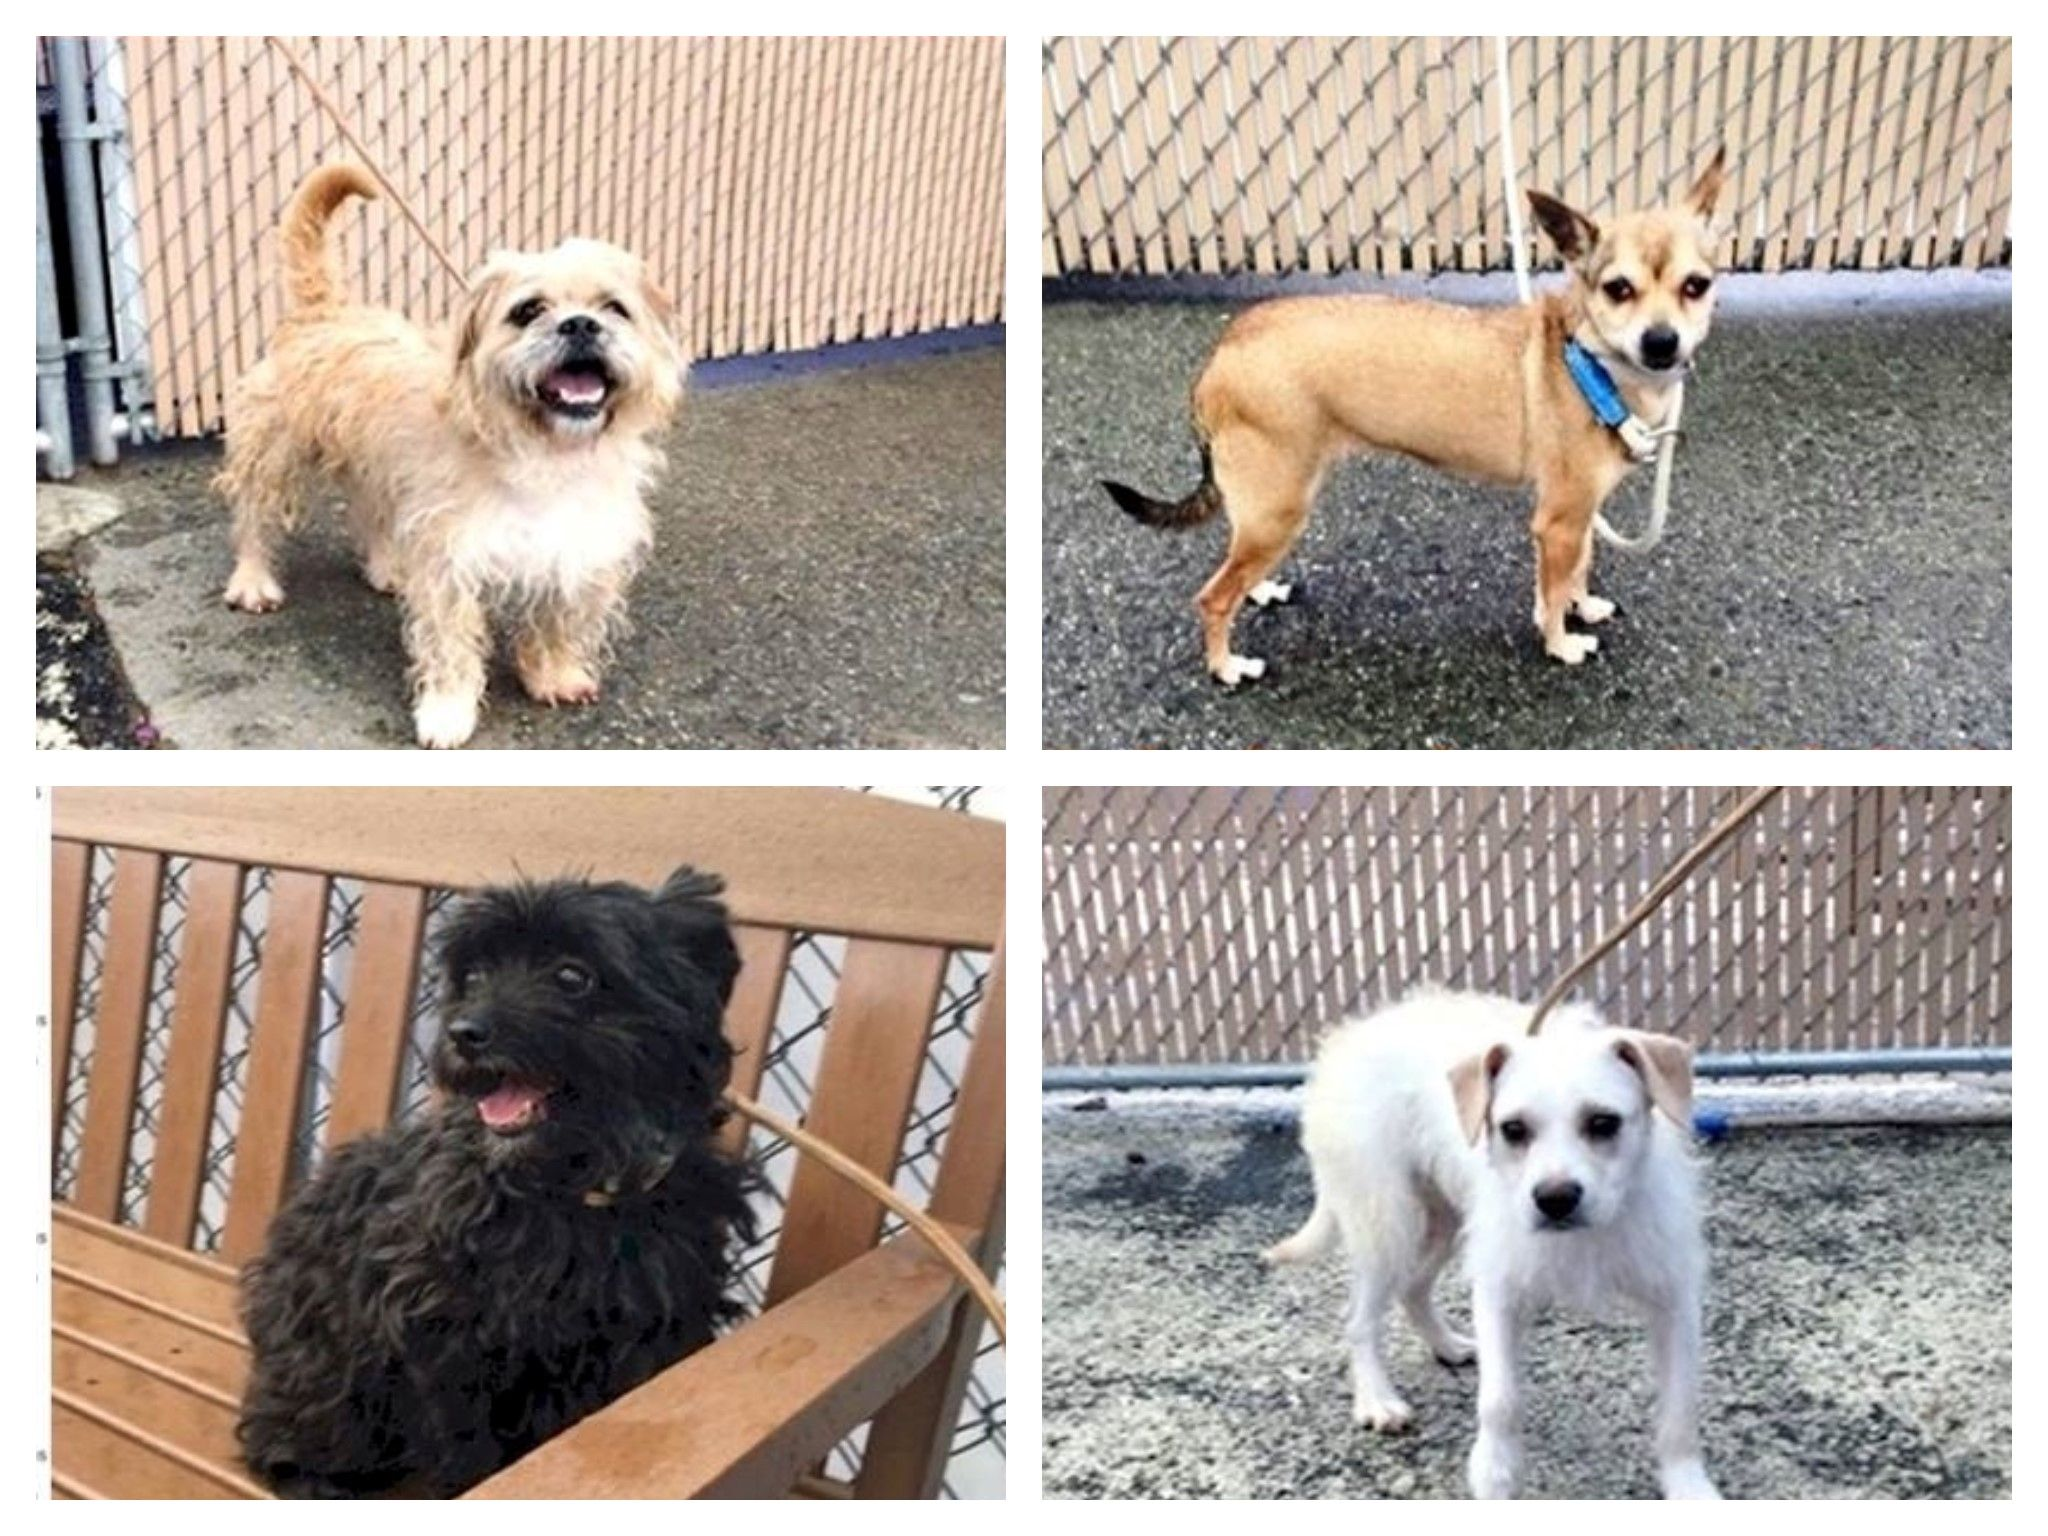 Eight Dogs Found Abandoned This Most Adorable Little Gang Of Raggamuffins Was Found Together At Intervate Ave Bronx Ny 10451 A Nyc Dogs Dog Breeds Dogs